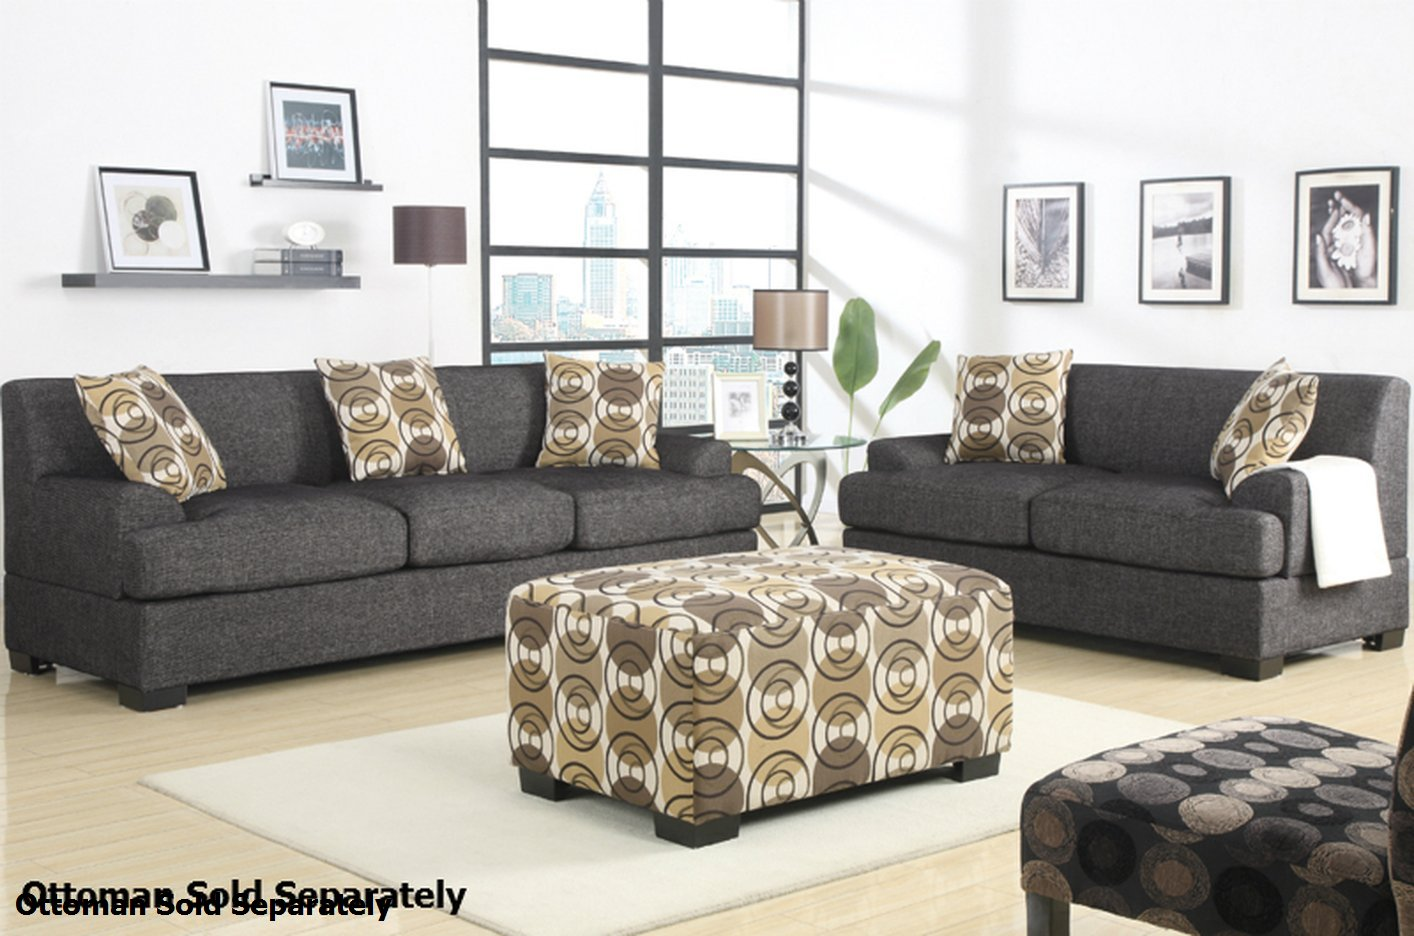 Poundex Montreal F7447 F7446 Grey Fabric Sofa And Loveseat: fabric sofas and loveseats